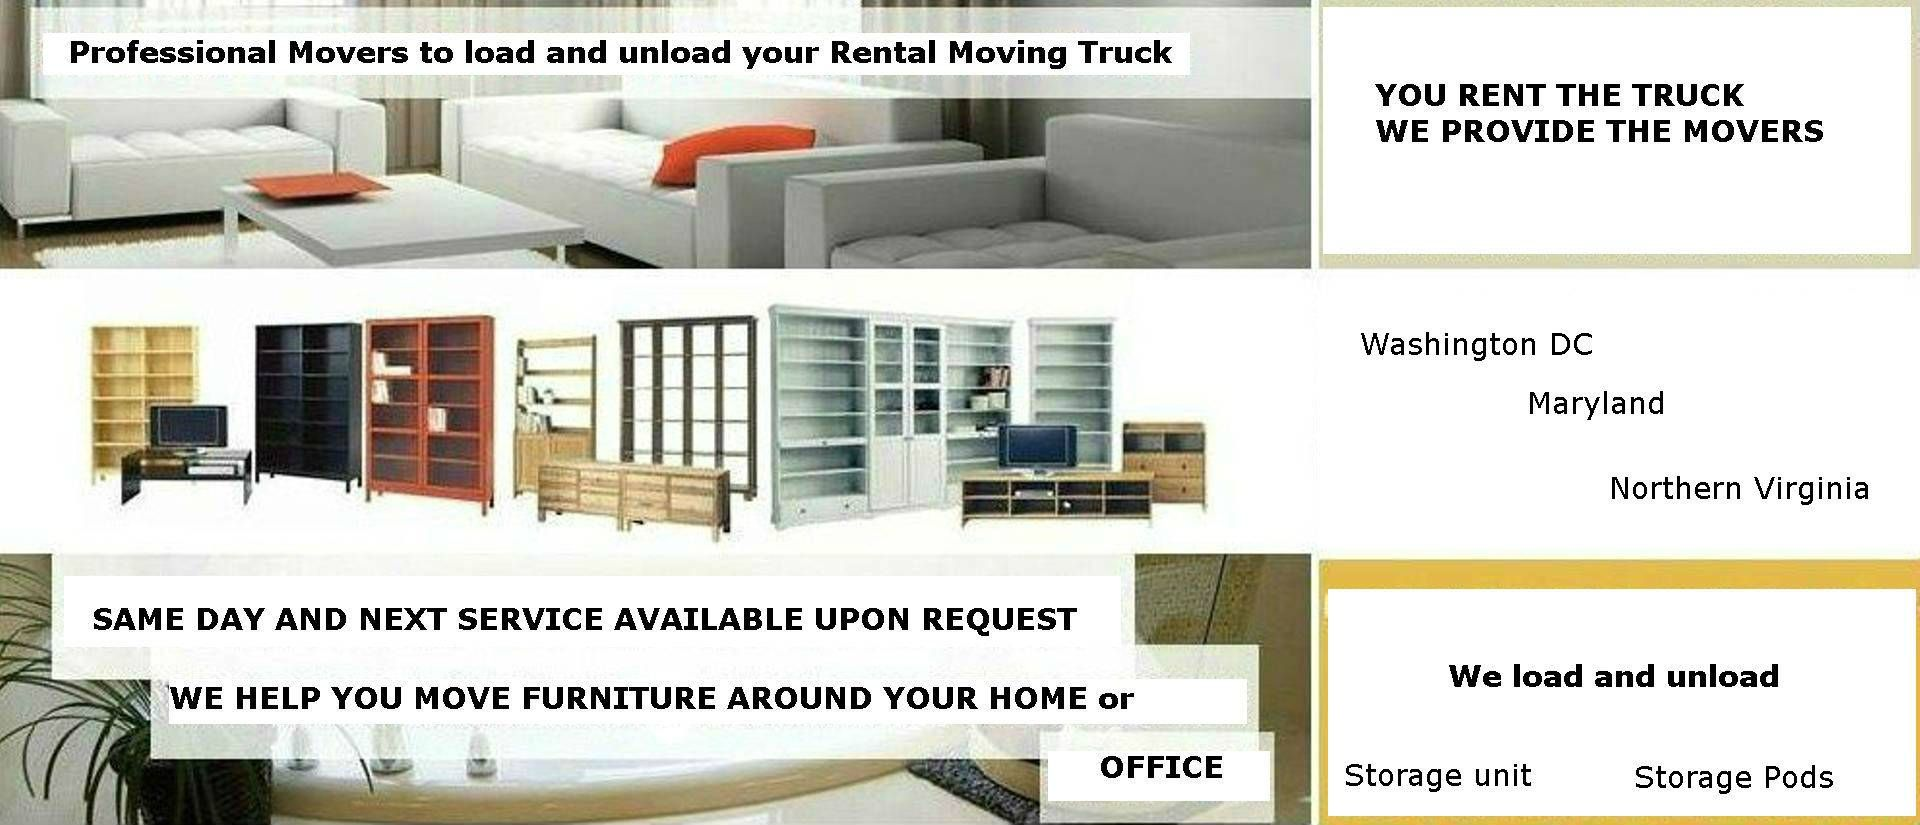 Elegant Furniture Moving Helpers To Help You Move Your Furniture At Your Home Of  Office